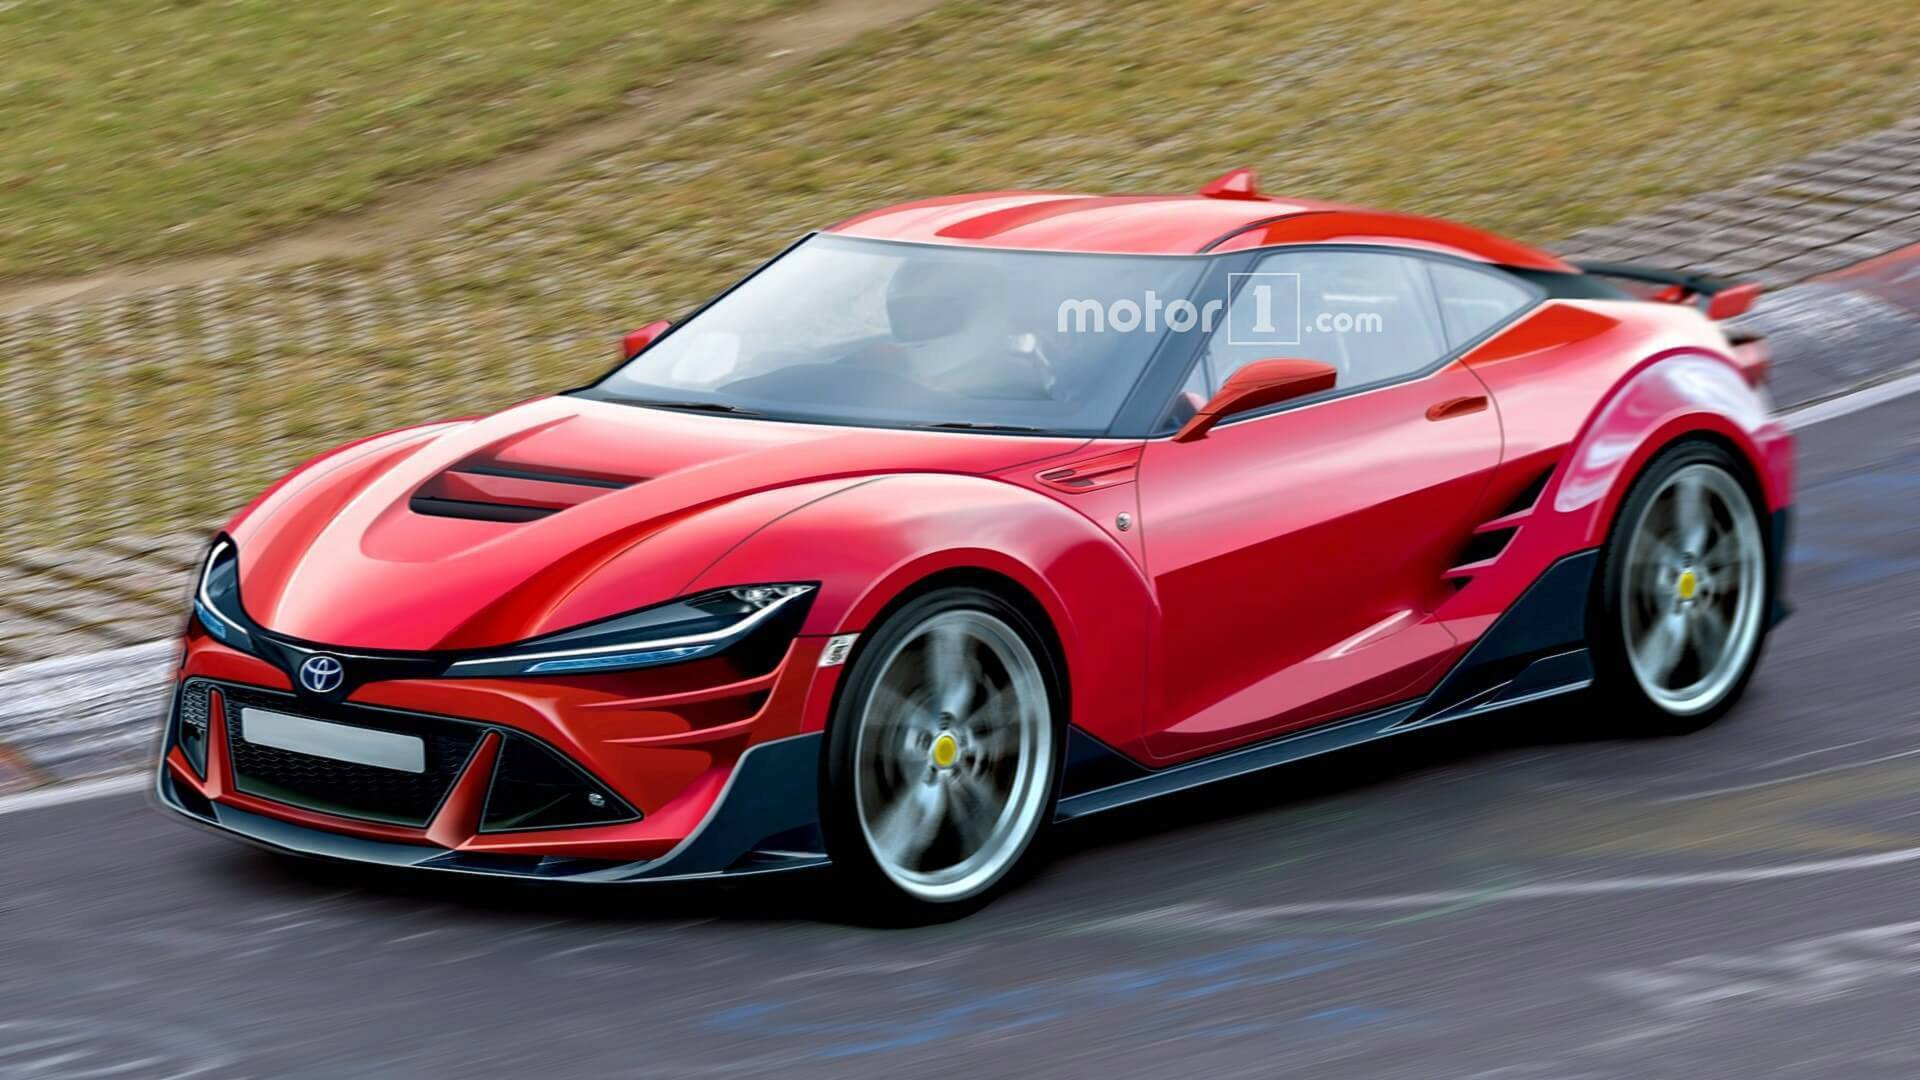 New Cars Coming Out In 2020 2020 New Models Guide: 30 Cars, Trucks, And SUVs Coming Soon